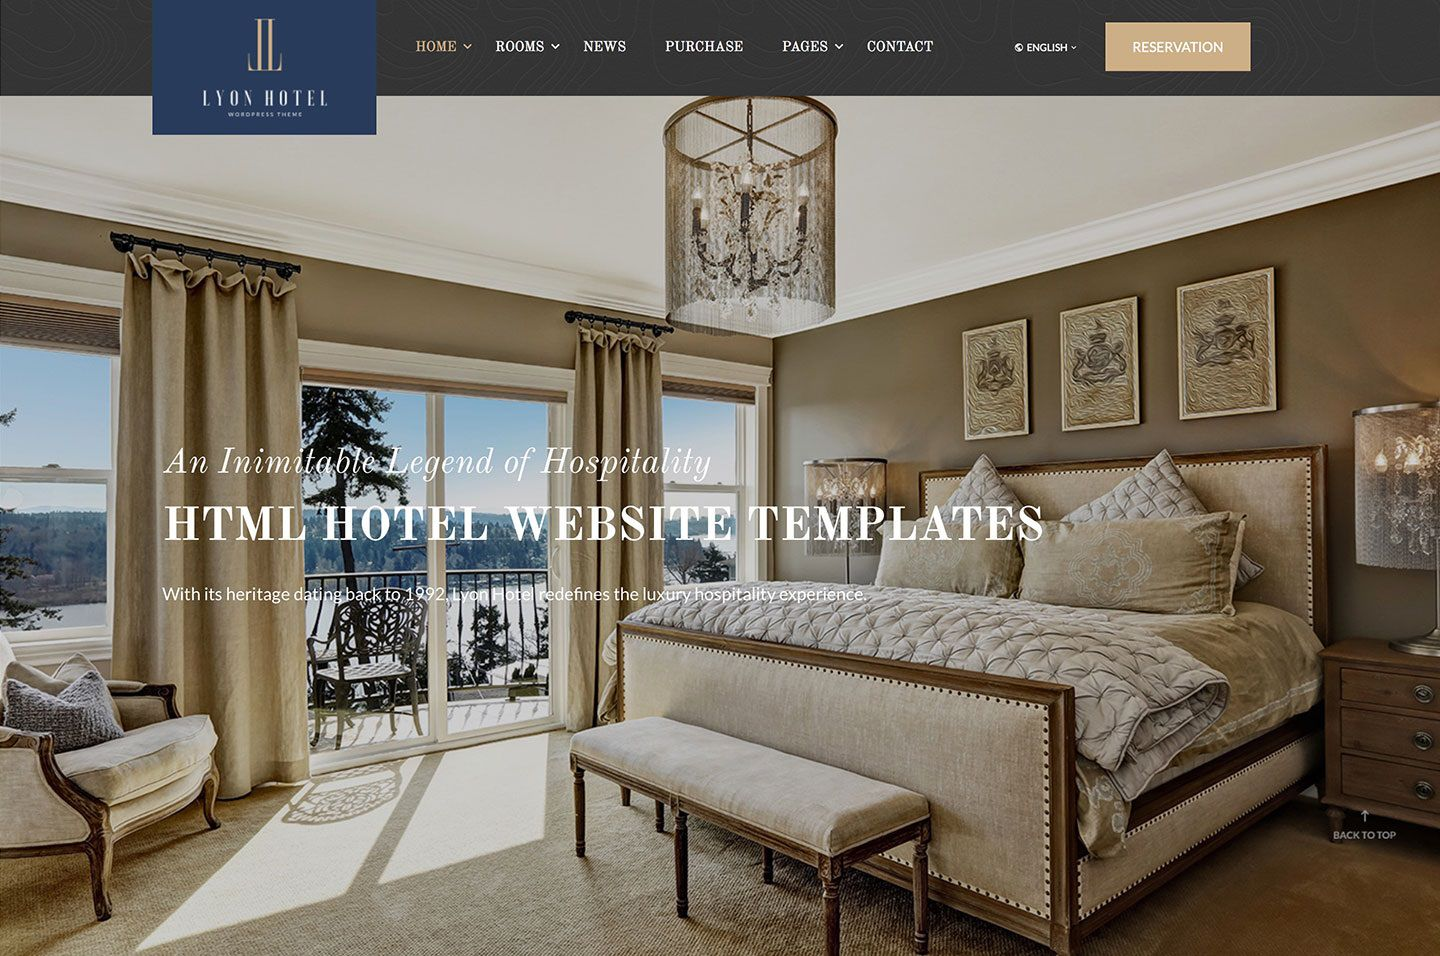 002 Wondrou Hotel Website Template Html Free Download Photo  With Cs Responsive Jquery And RestaurantFull